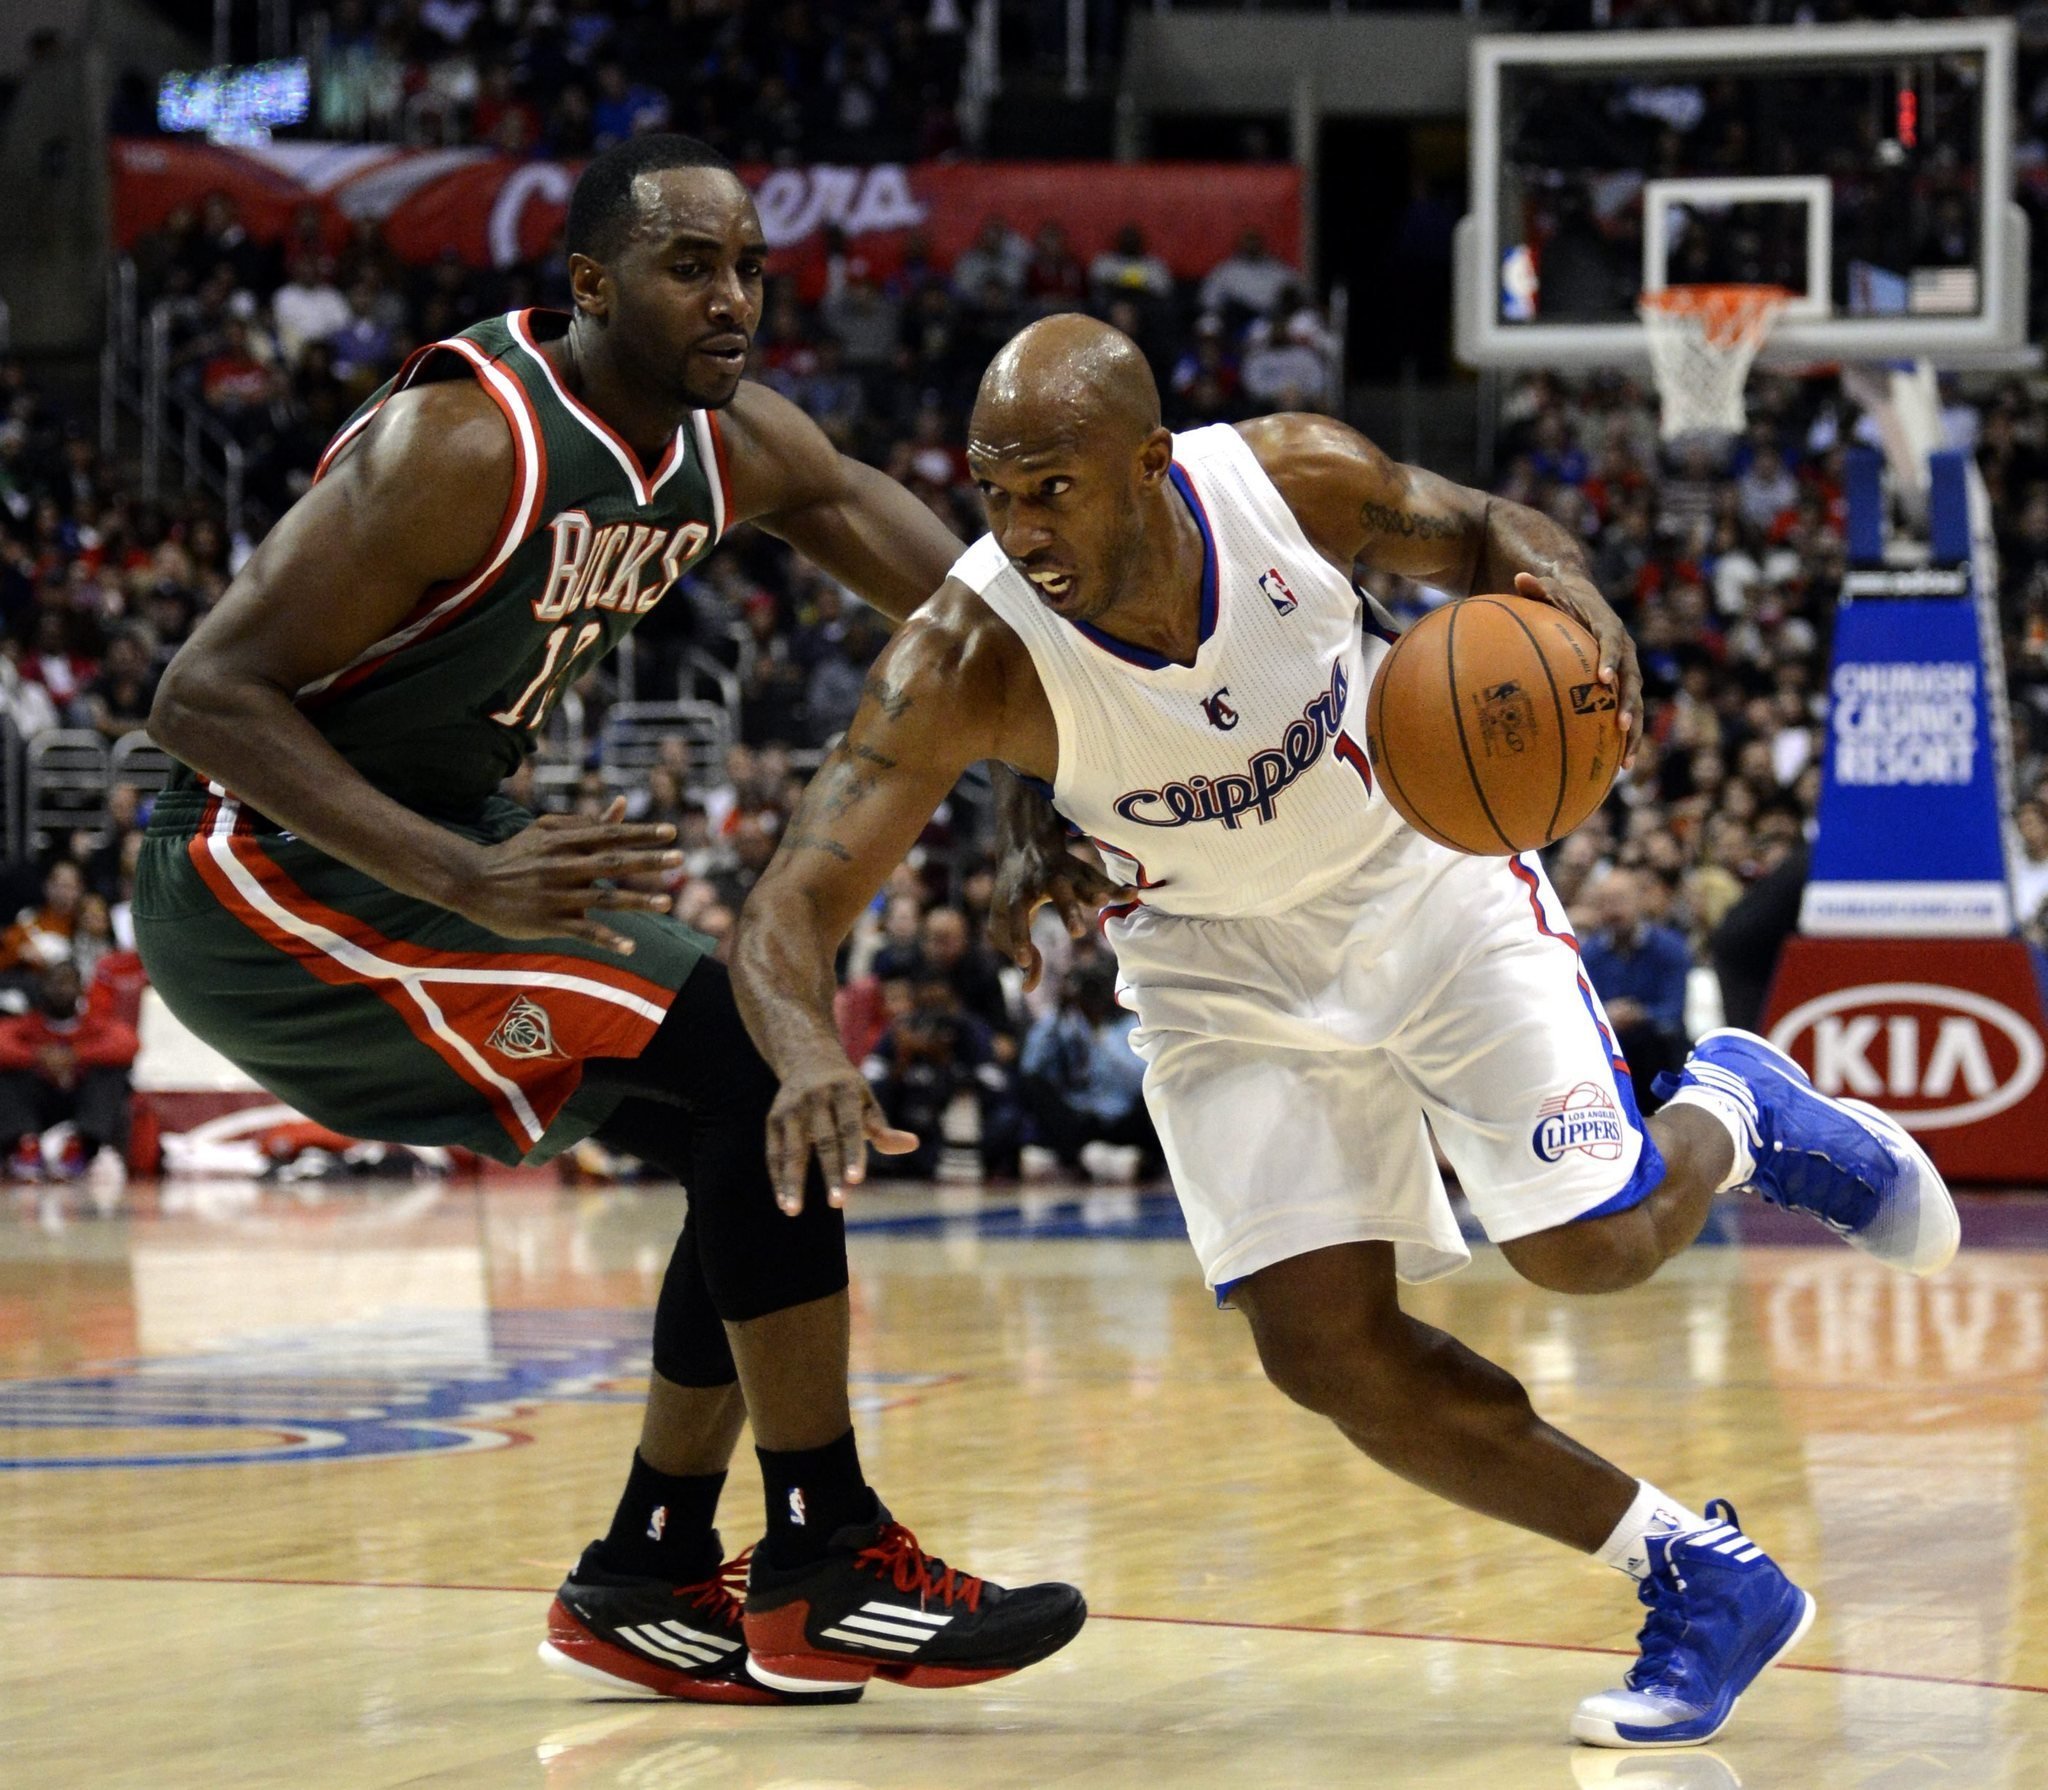 Chris Paul DeAndre Jordan show love for Chauncey Billups on